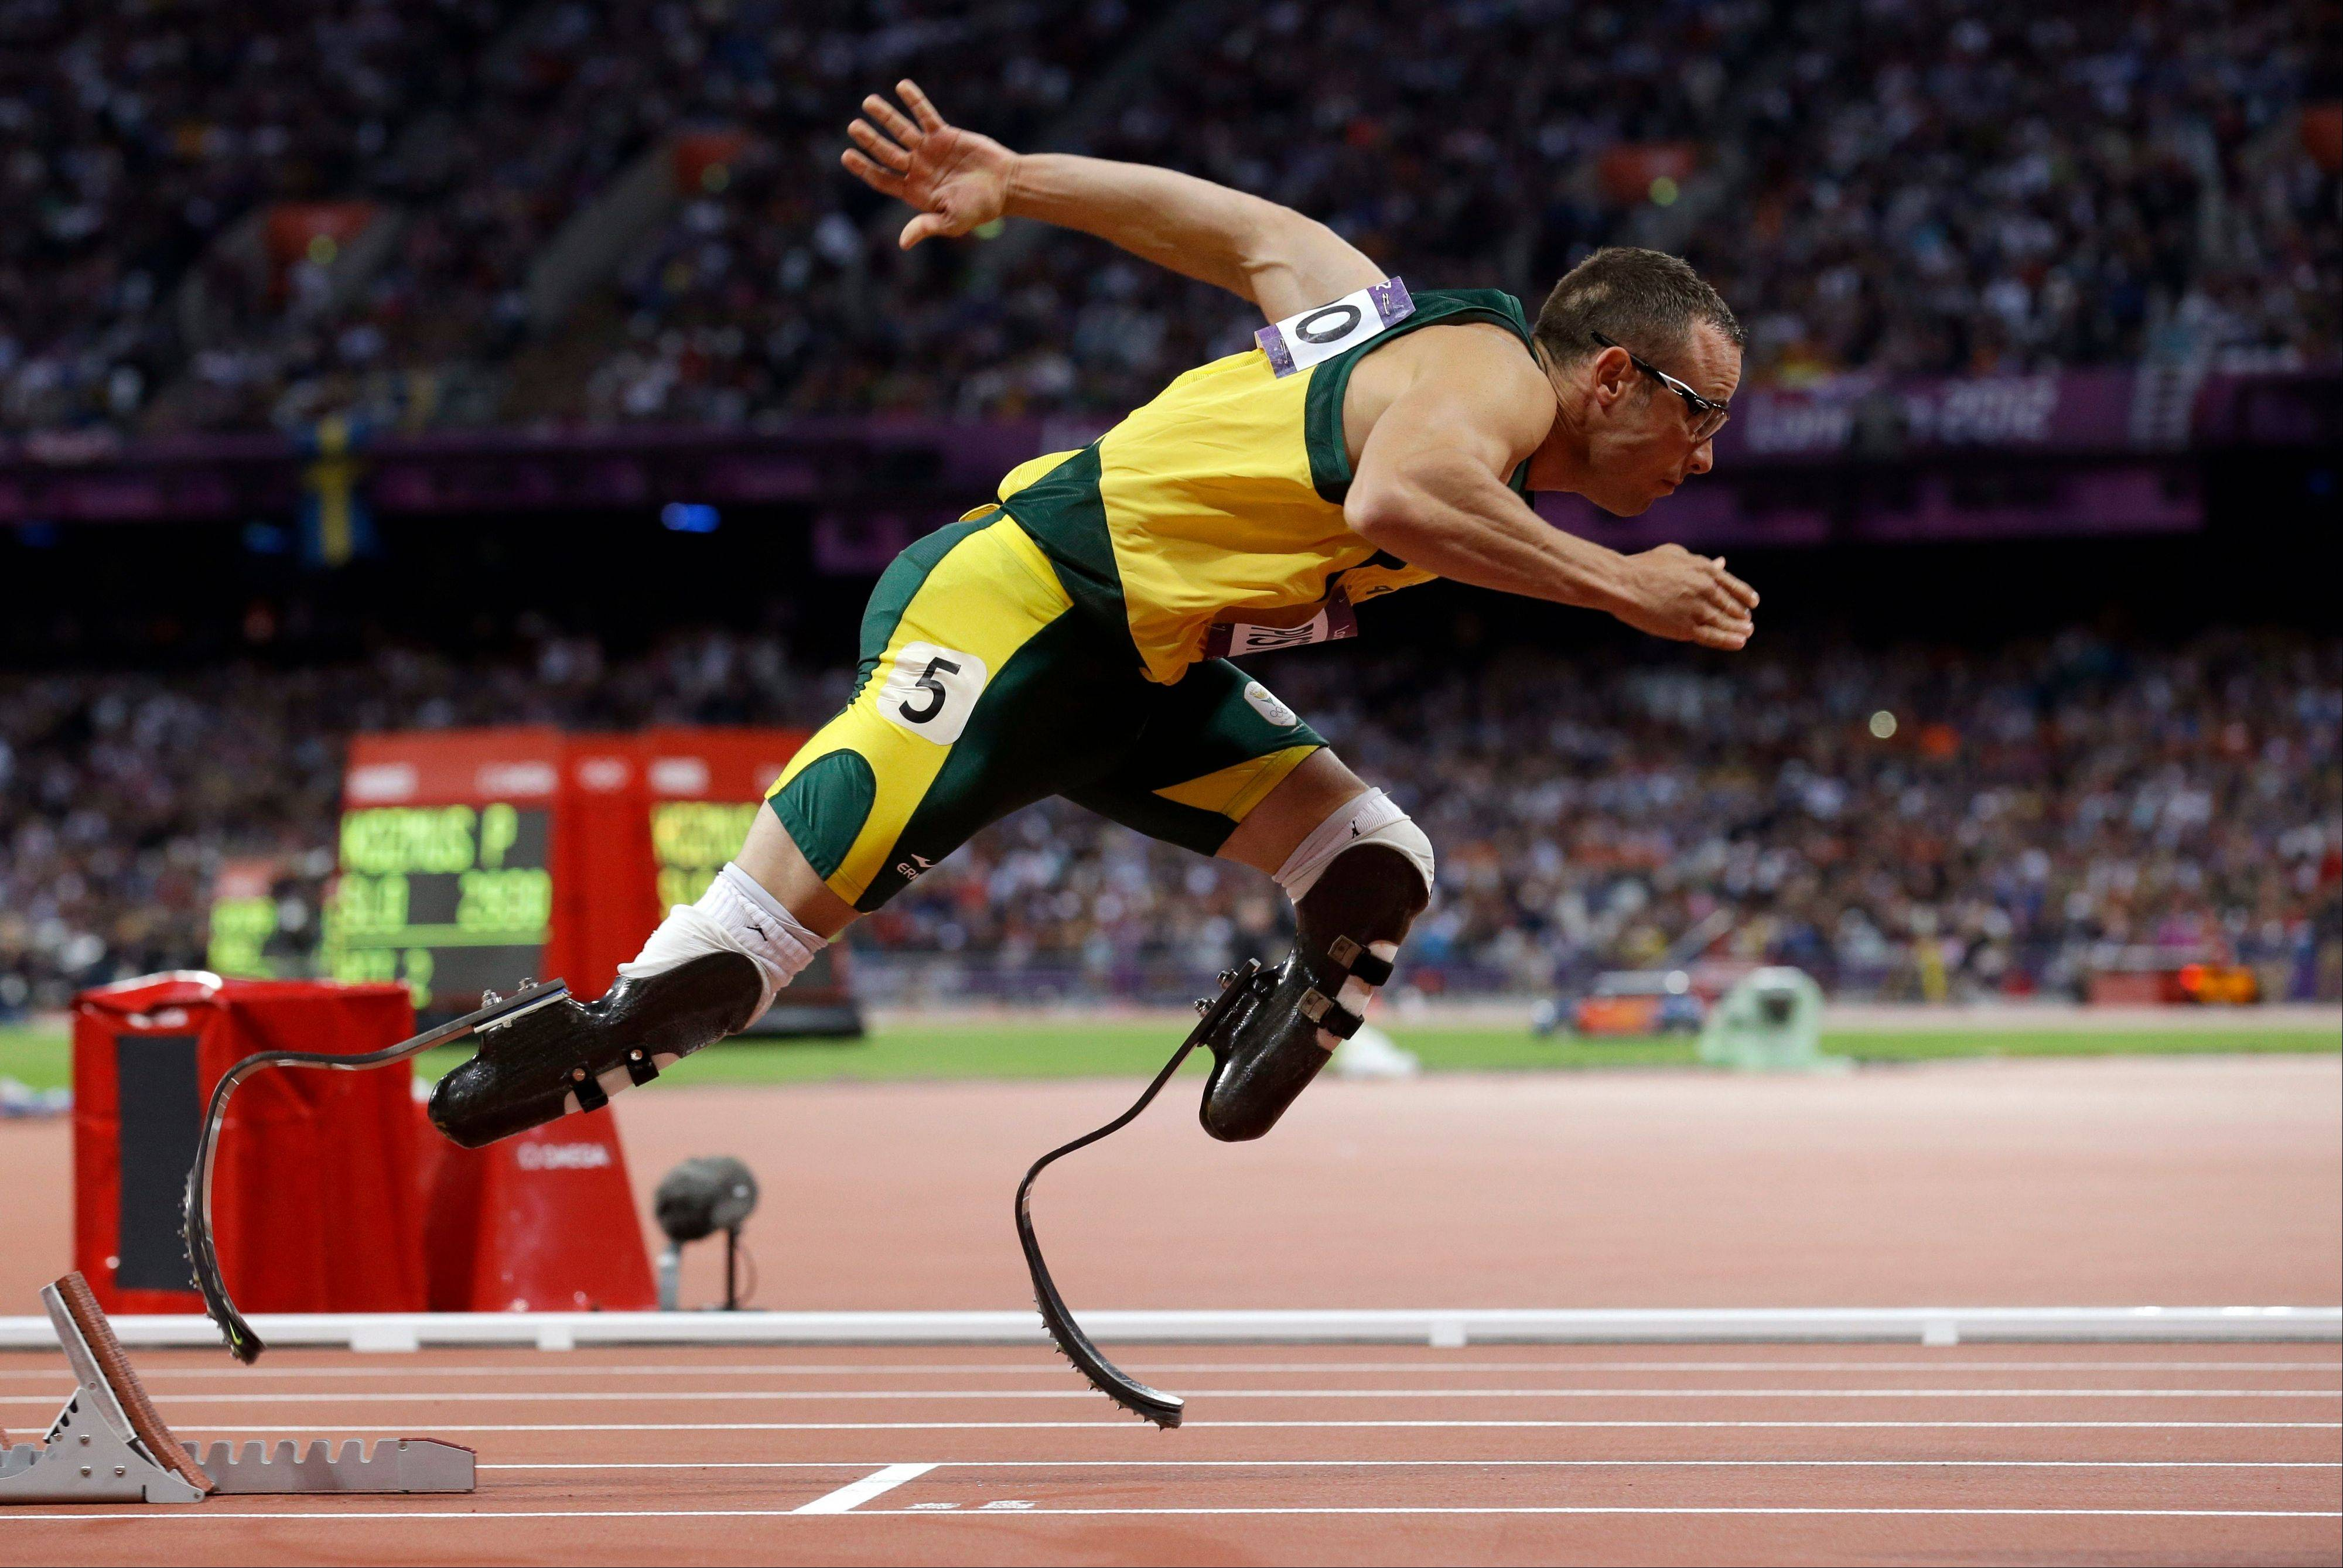 Pistorius lived out dream by running at Olympics